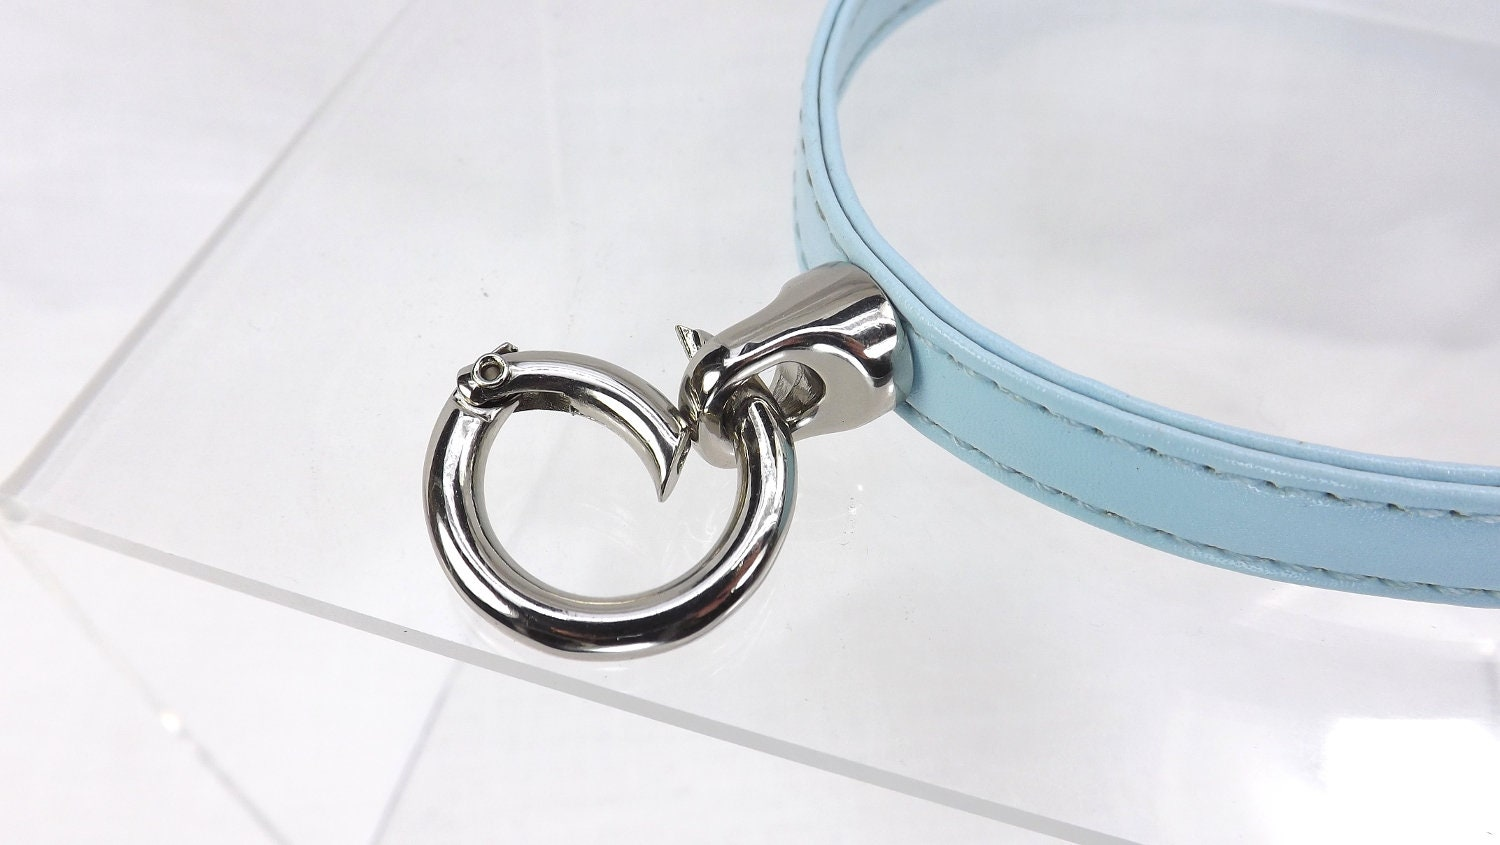 BDSM Day Collar O ring Buckle Collar sub collar slave day collar - product images  of